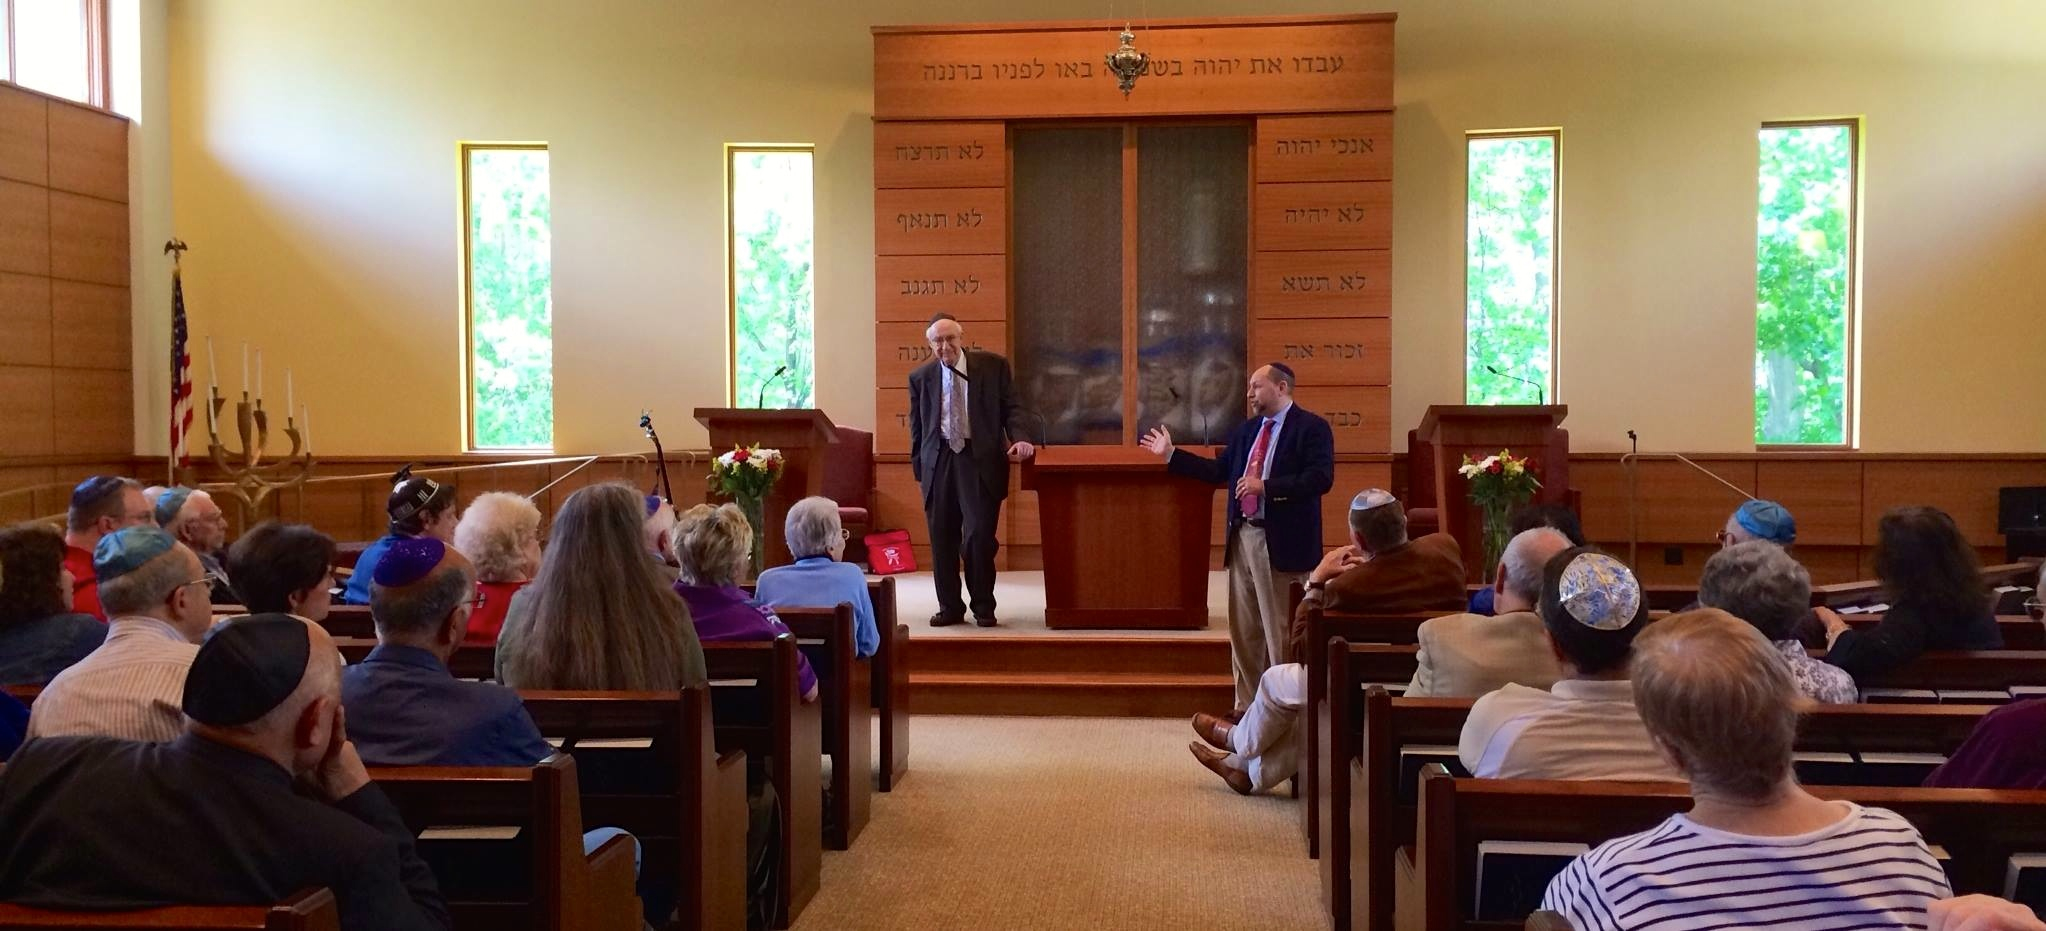 2014-05-18-Rabbi-Dresner-takes-questions-from-the-audience